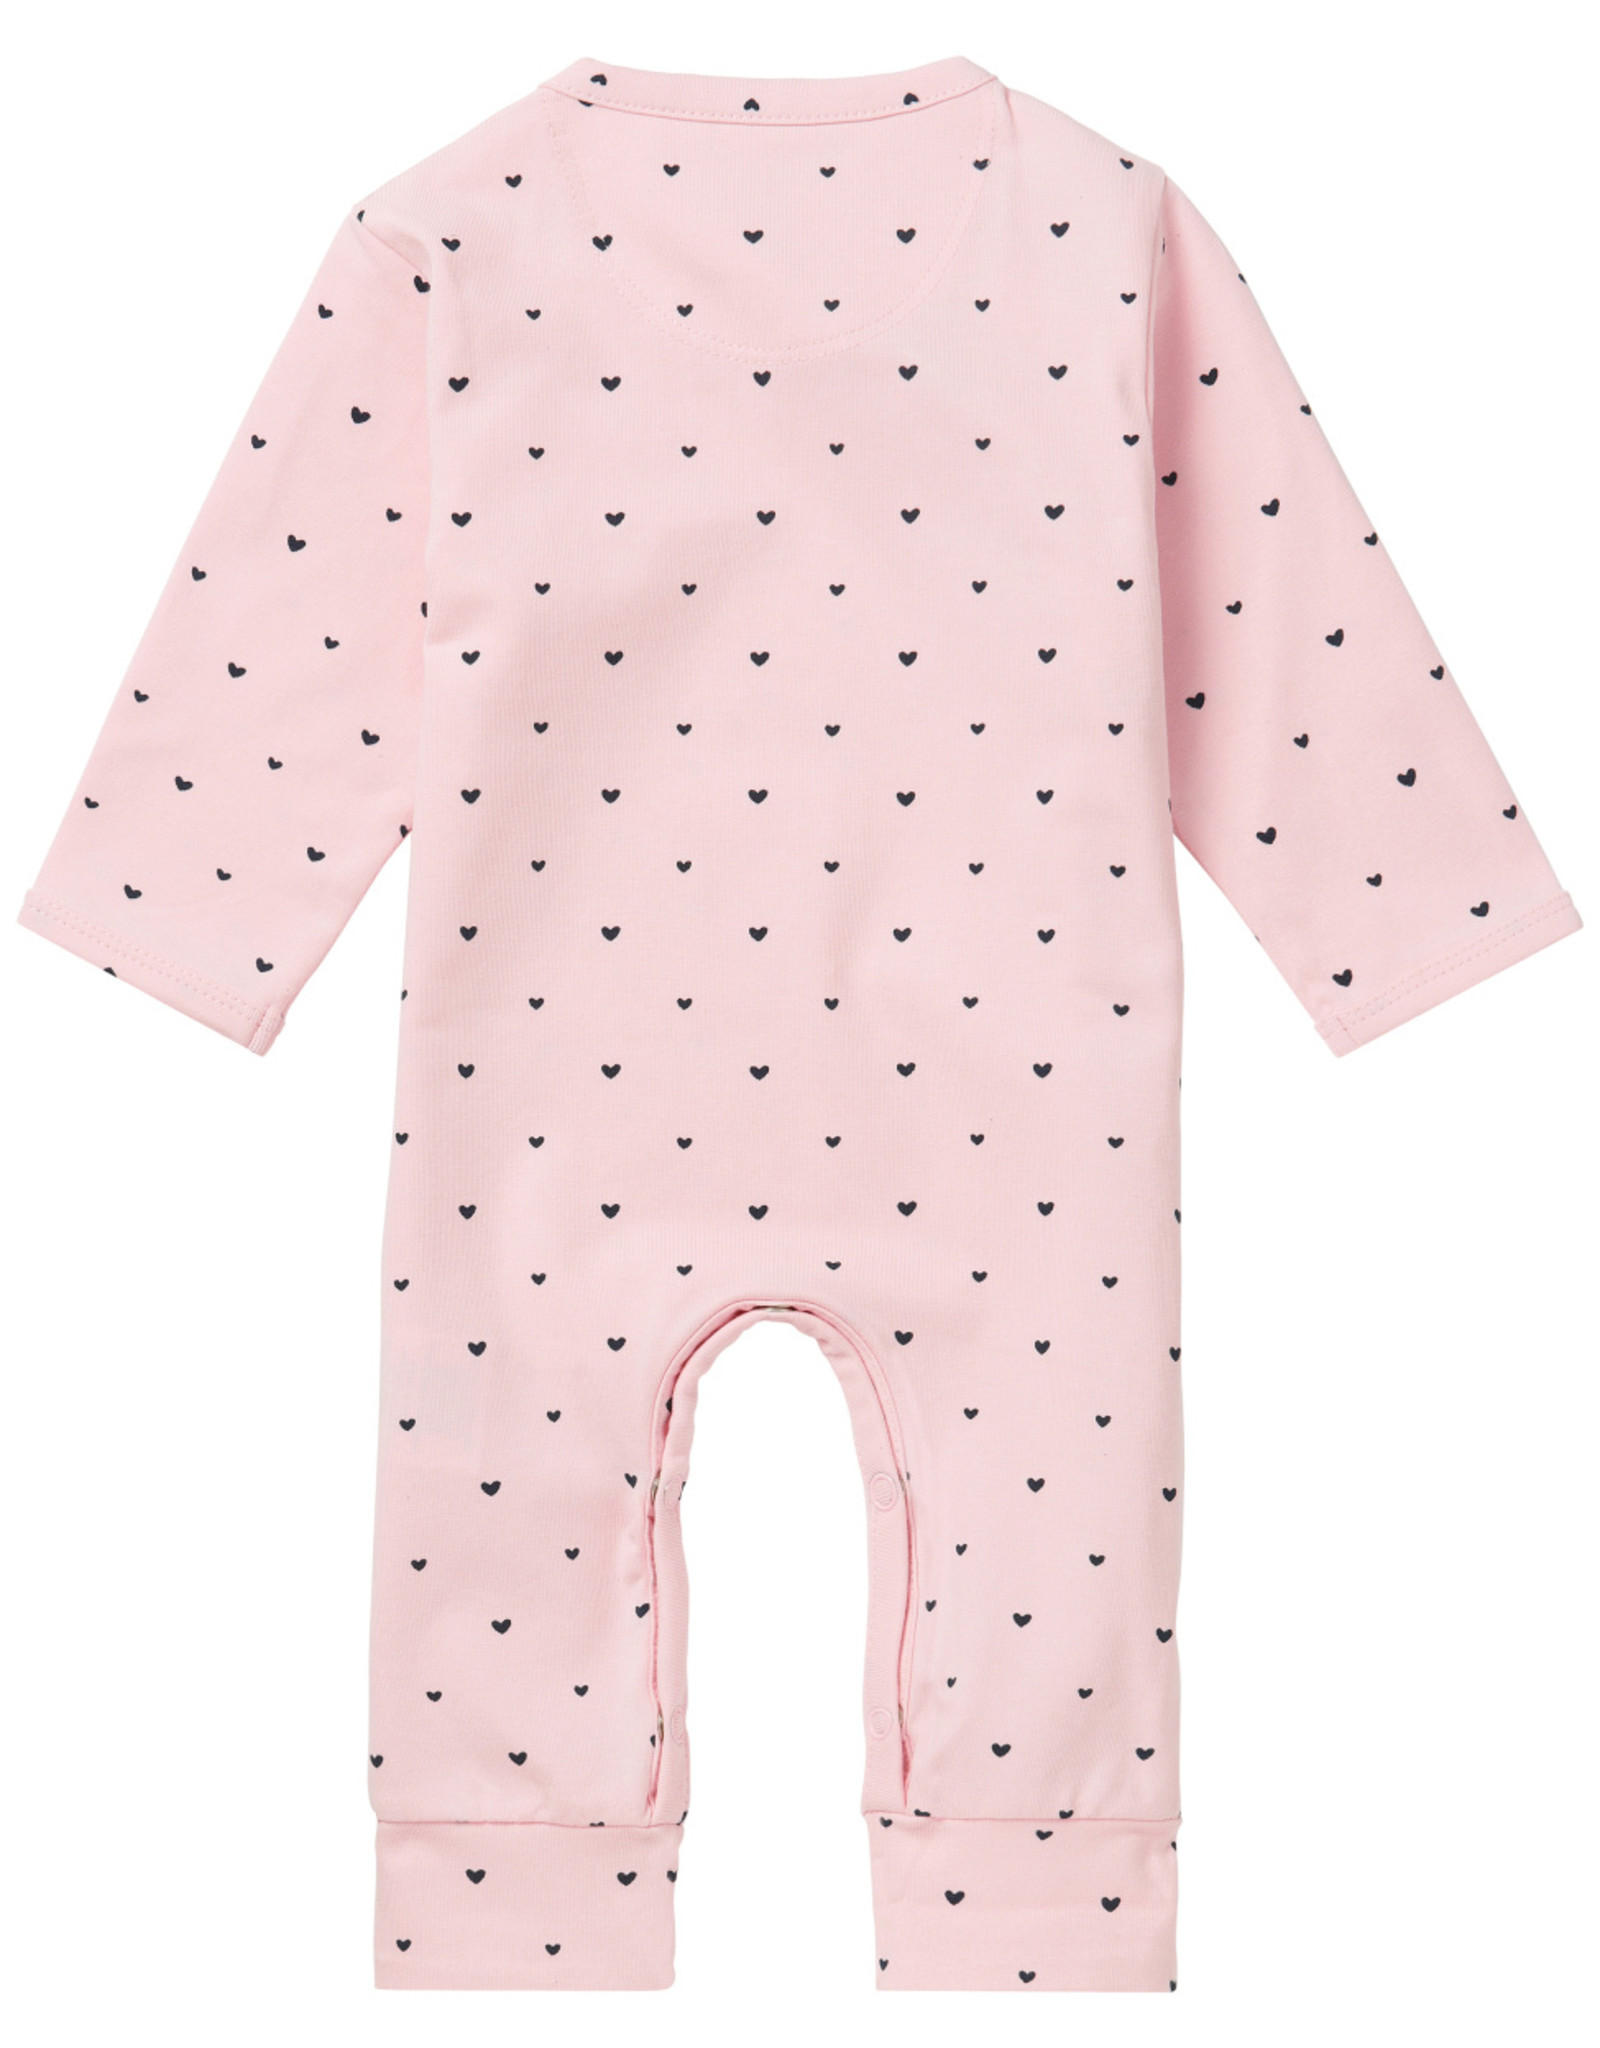 Noppies Noppies G Playsuit jrsy longleeve Nemi LIGHT ROSE maat 44